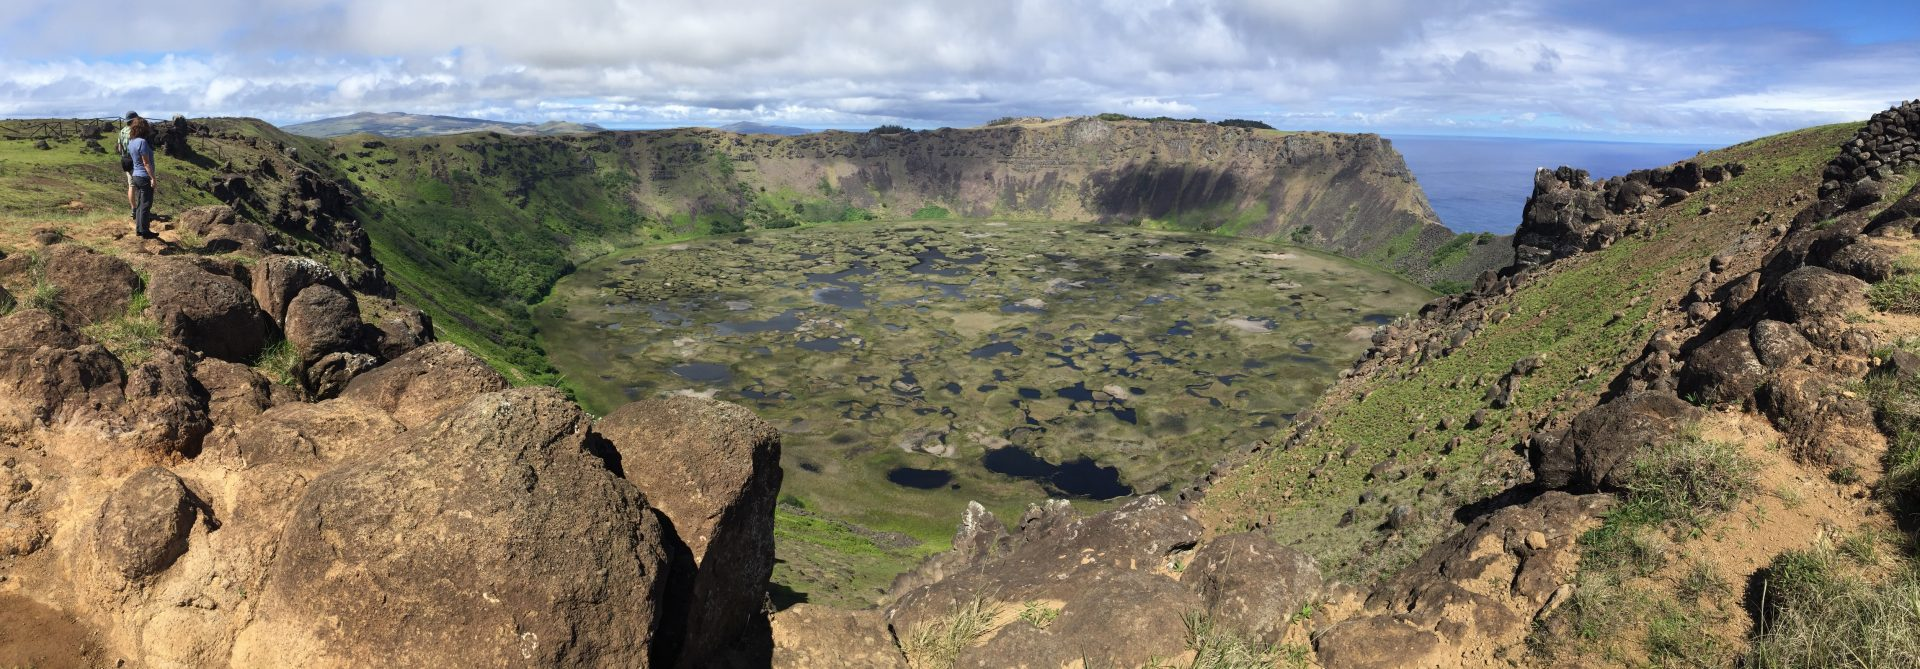 The Rano Kau crater on Easter Island, Chile (photo credit Alison Adams)